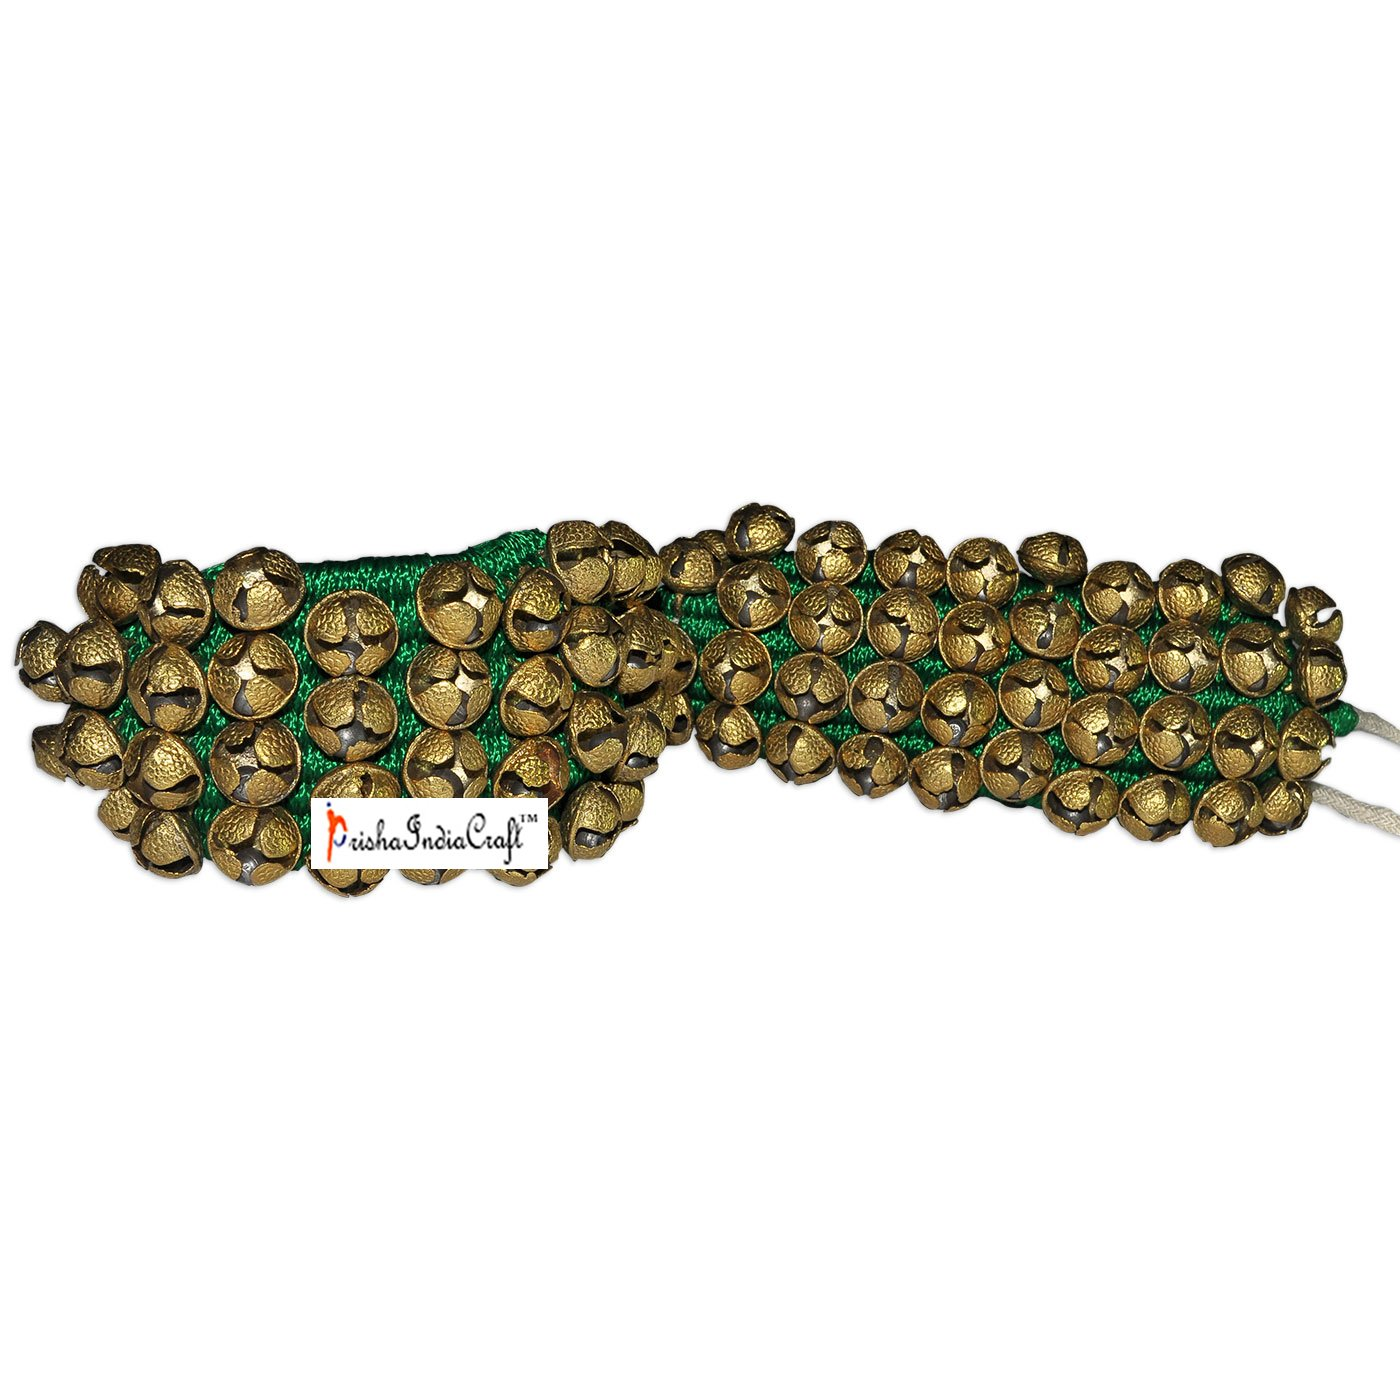 Prisha India Craft ® Kathak Four Line Big Bells (16 No. Ghungroo) Best quality Good Quality Ghungroo Green Pad Indian Classical Dancers Anklet Musical Instrument